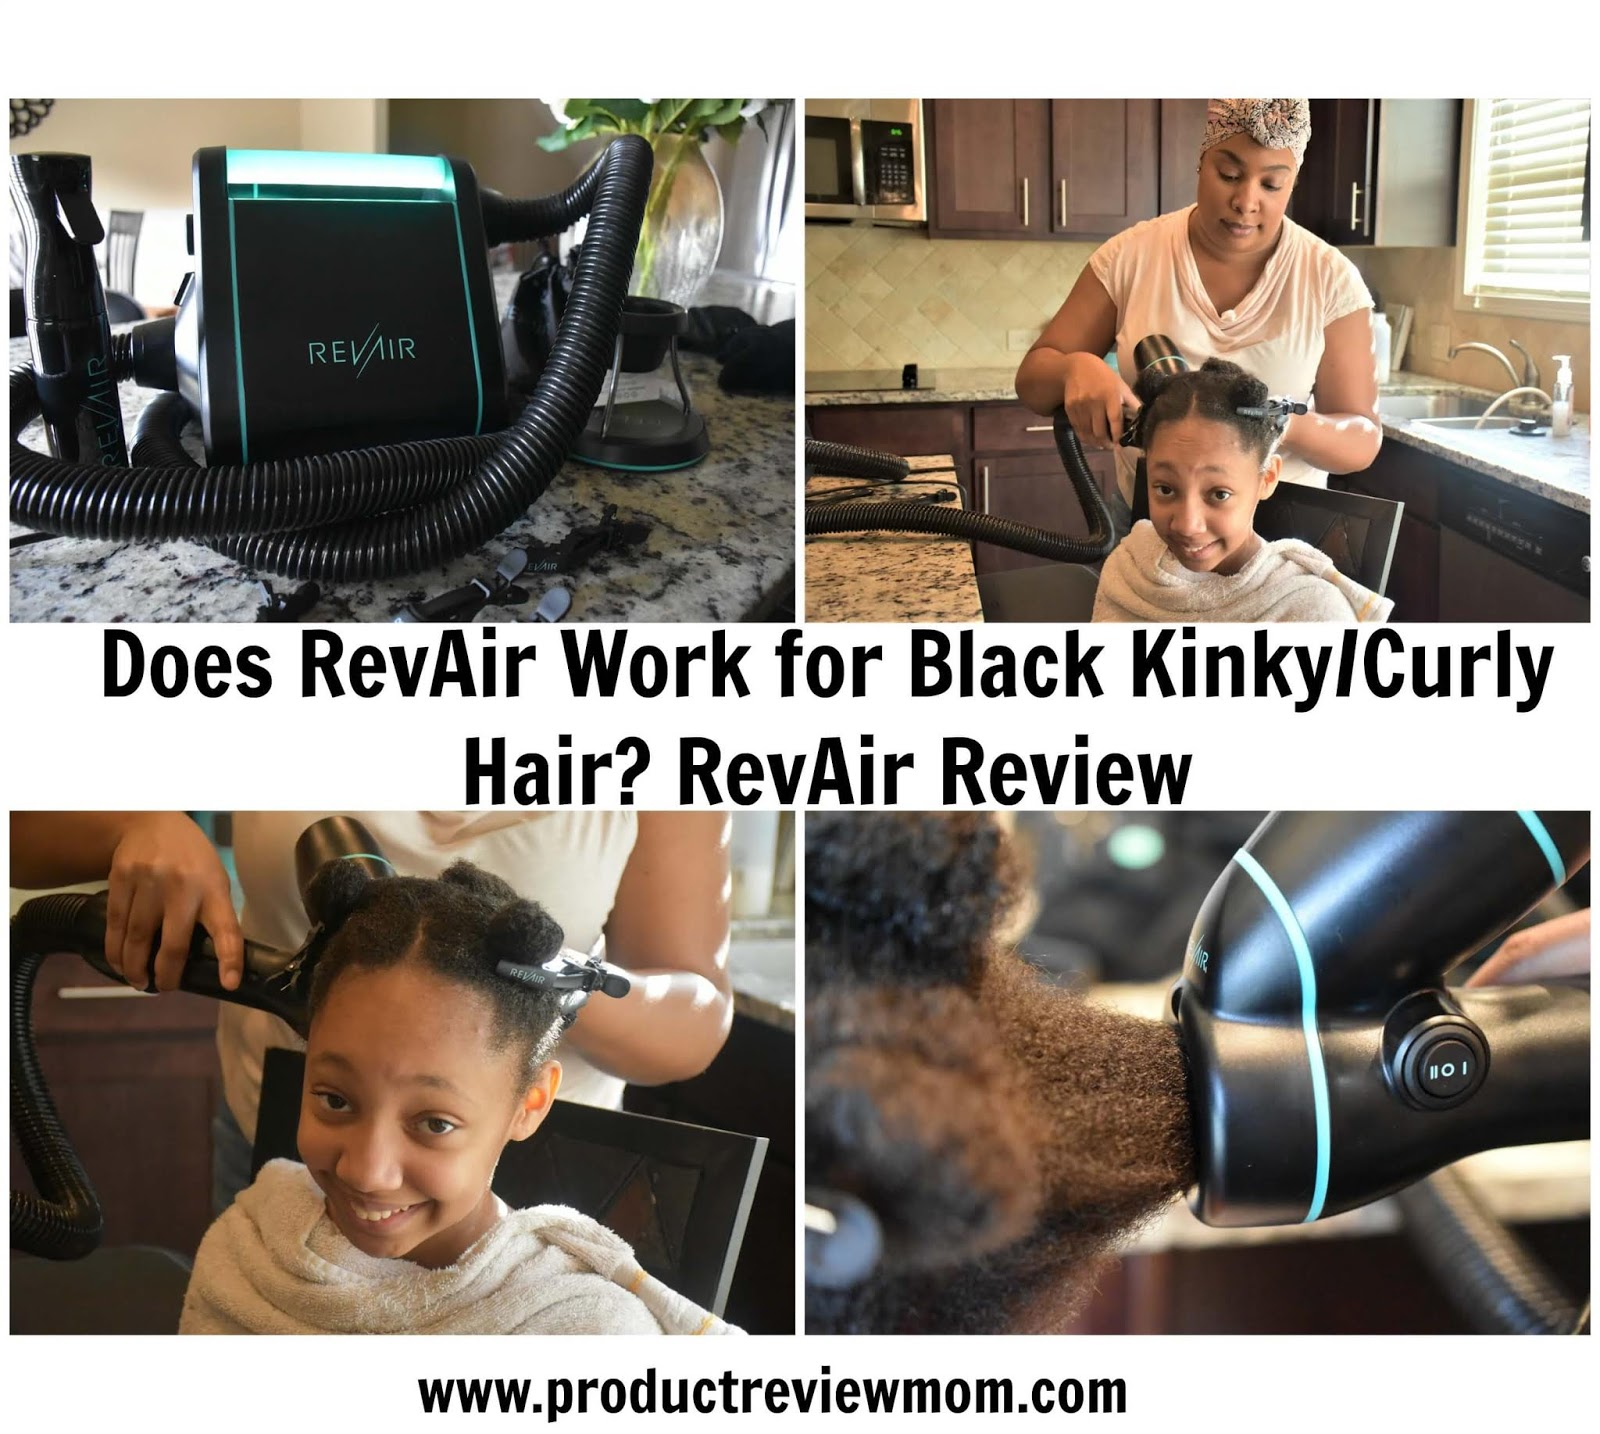 Video: Does RevAir Work for Black Kinky/Curly Hair? RevAir Review